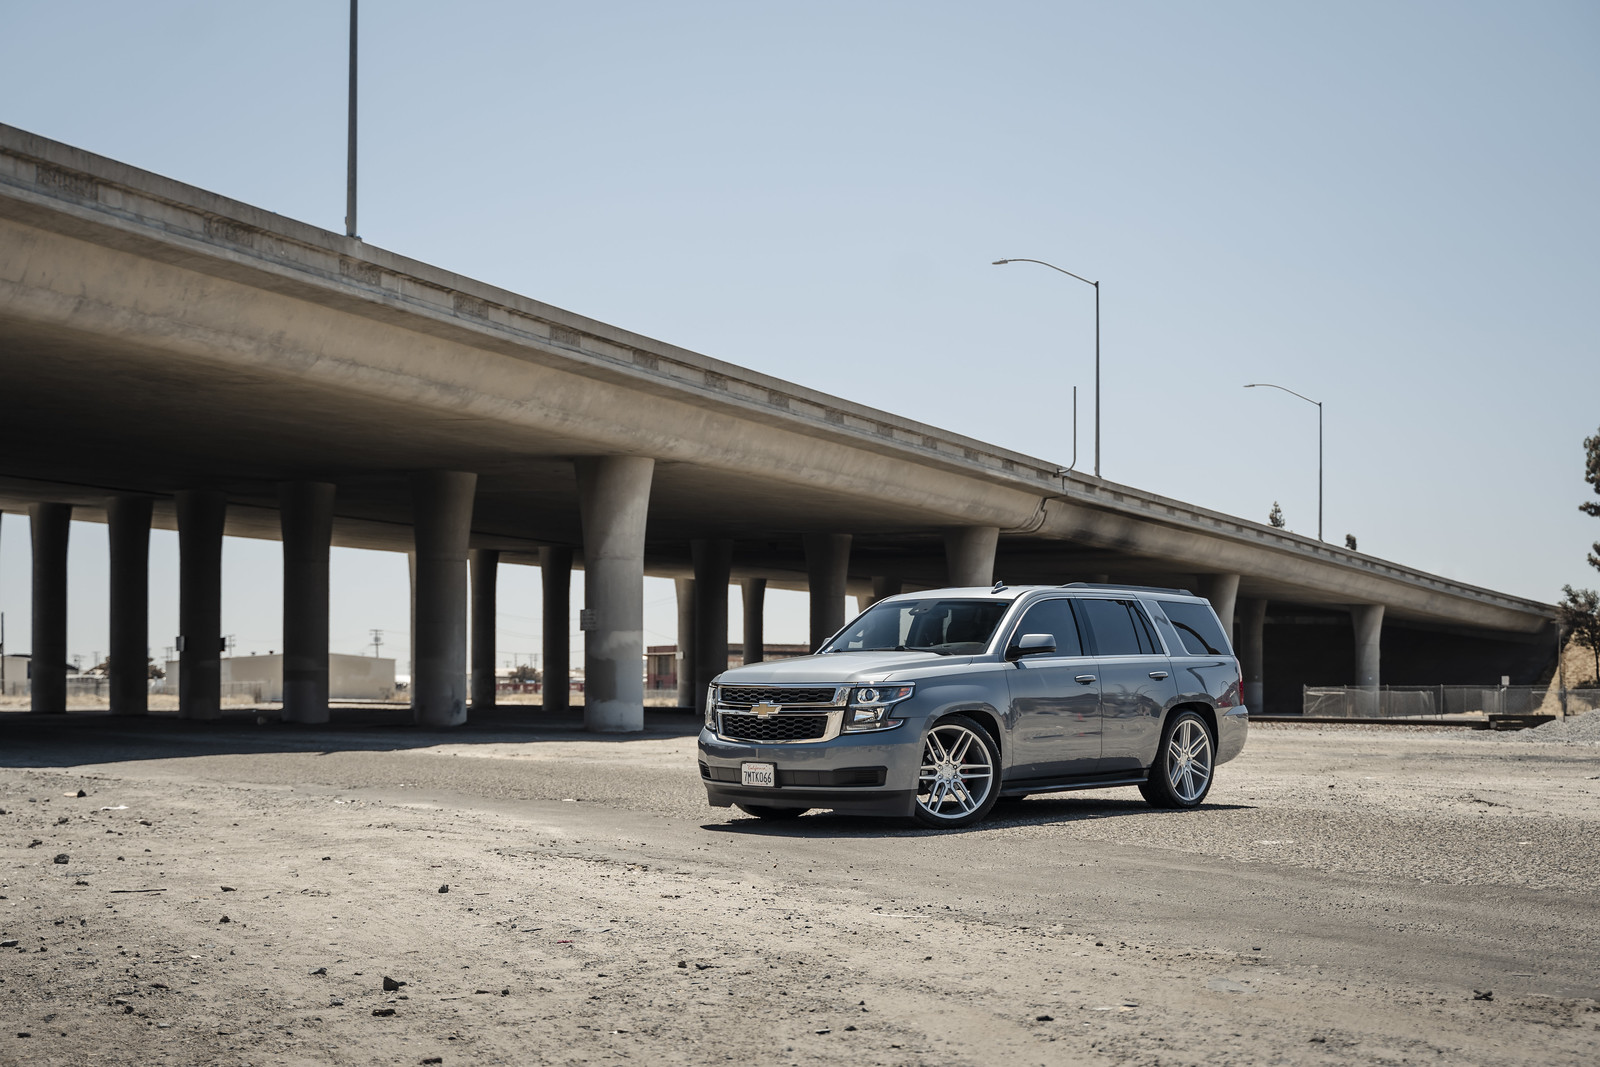 2017_Chevrolet_Tahoe_BD17_6_Silver_Machined_Face_1